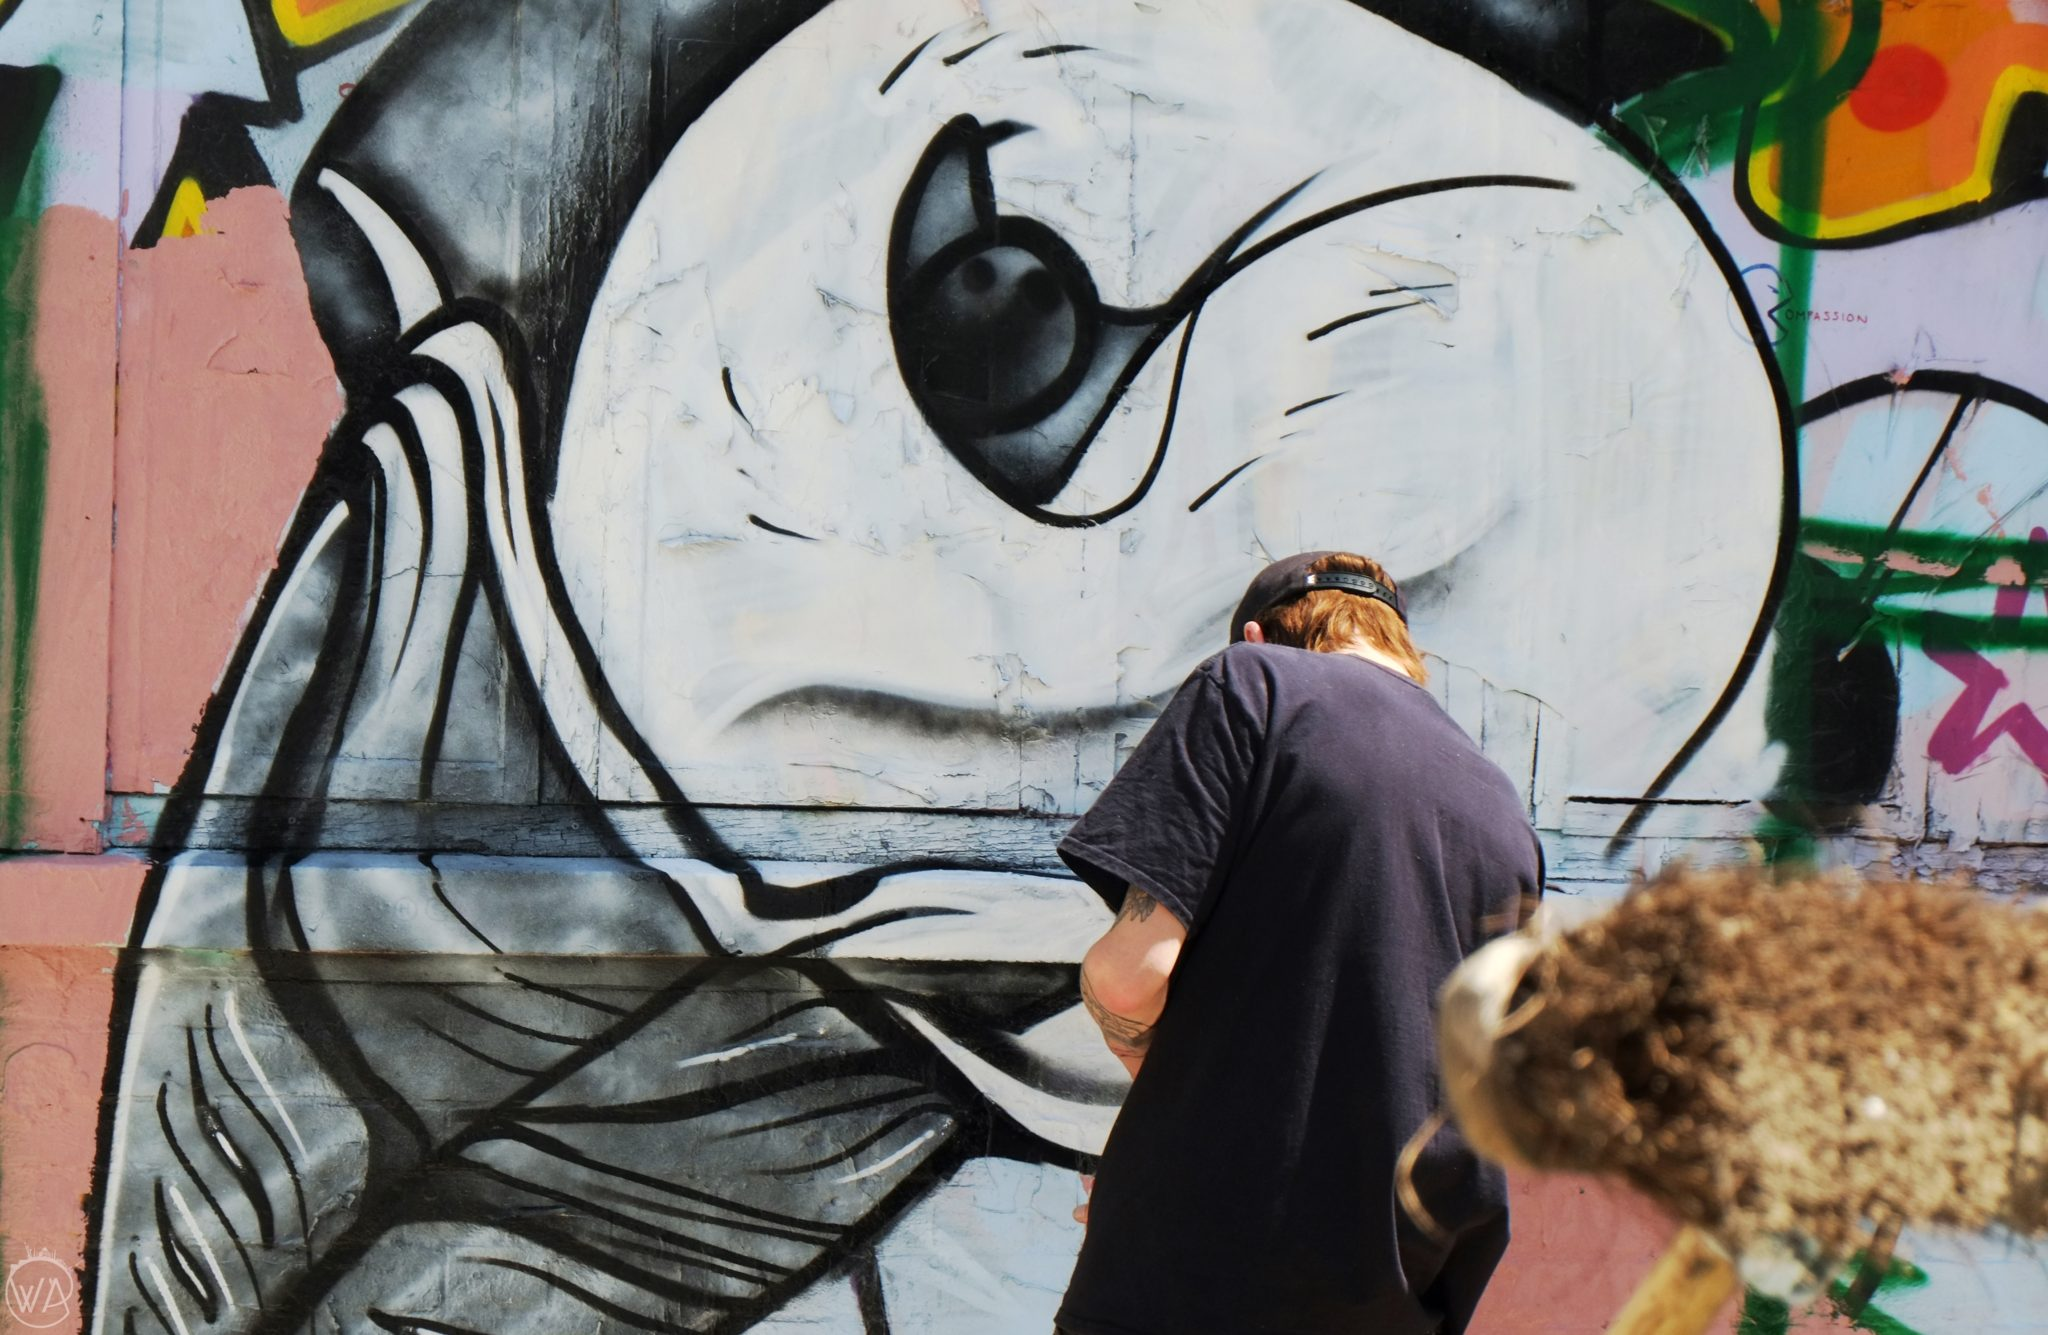 Graffiti artist creating, Brick Lane London